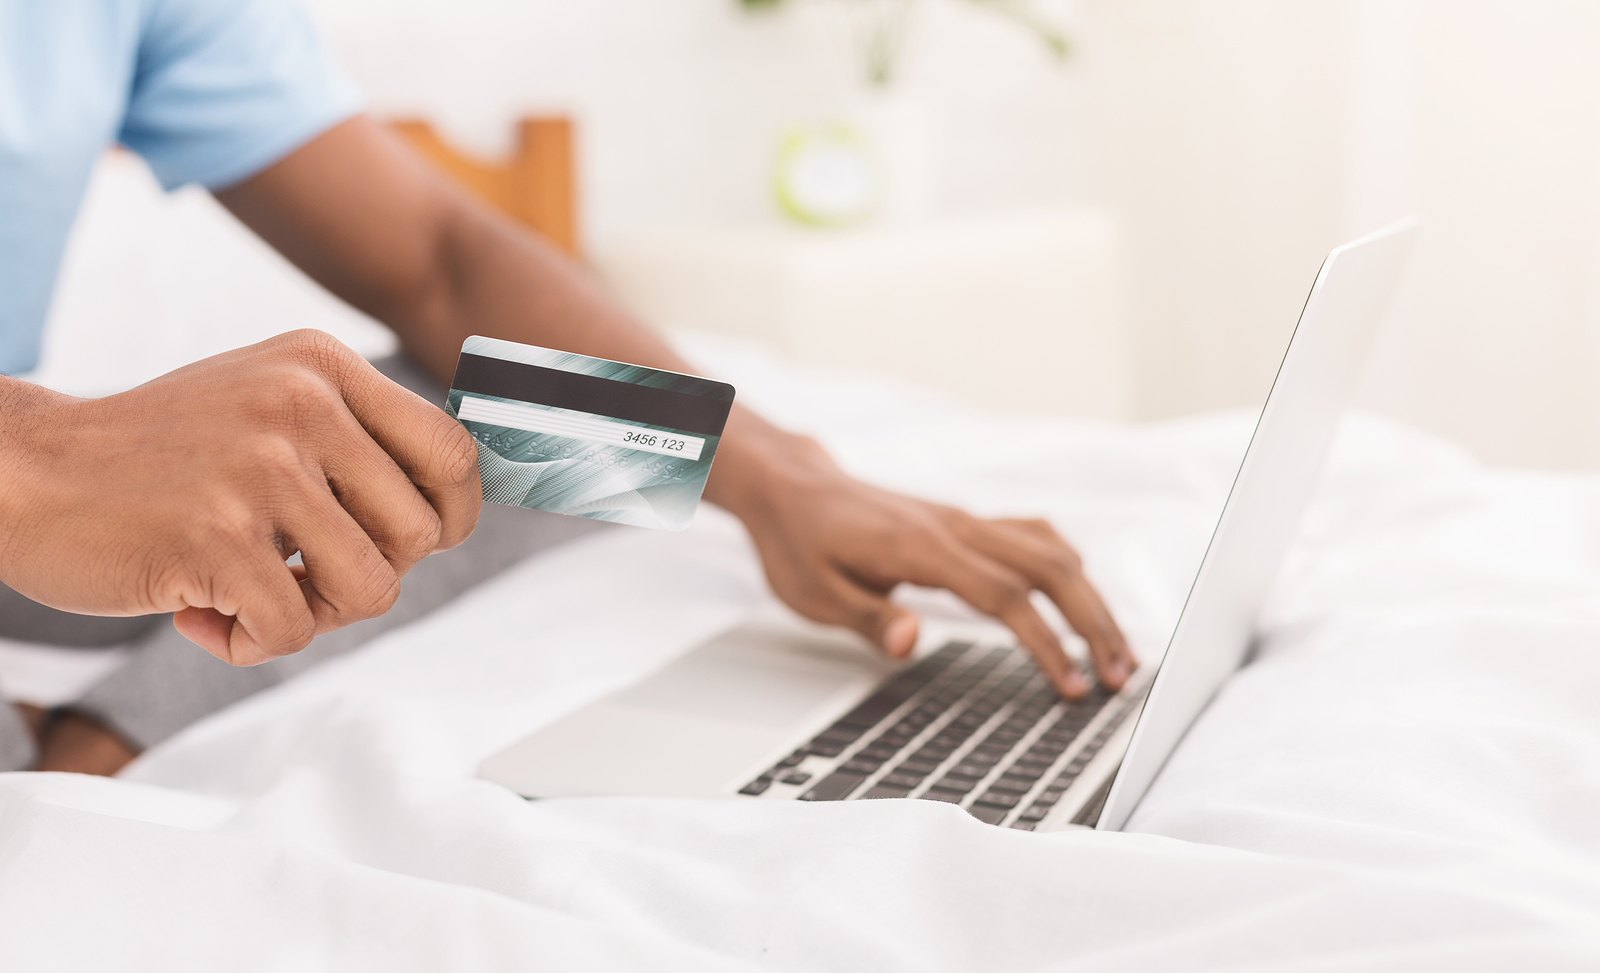 Online Shopping on laptop with credit card